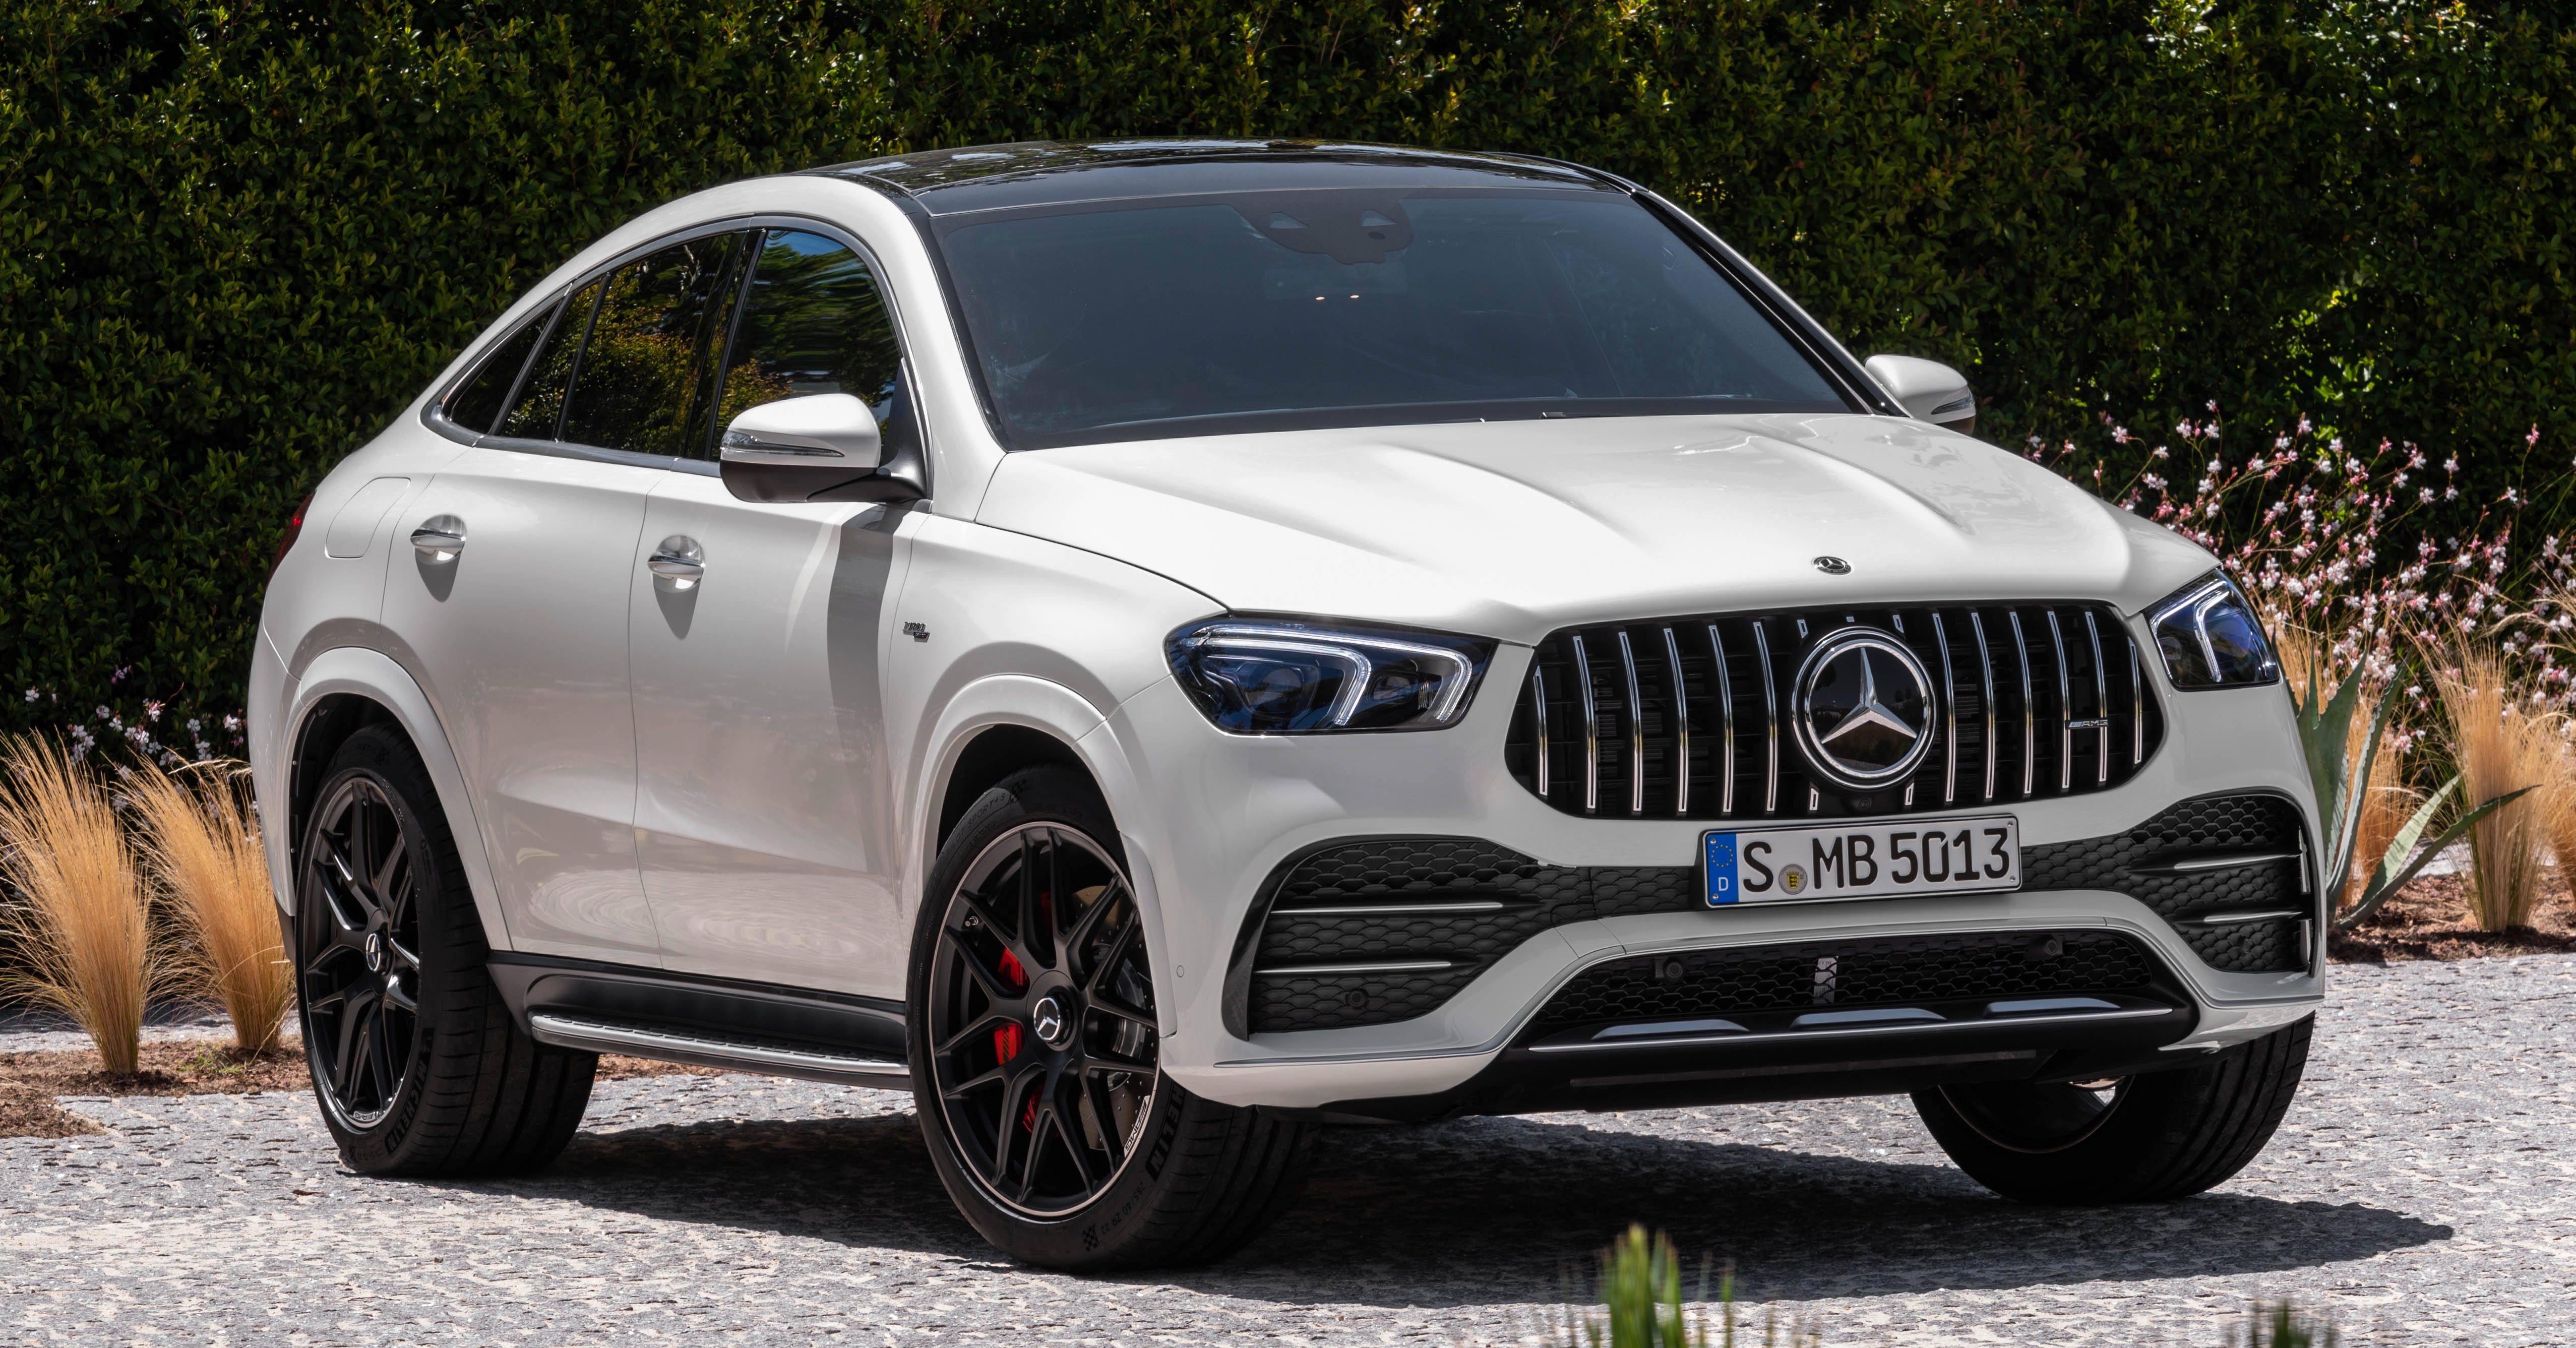 Mercedes GLE-Class Coupe (C167) suv photo